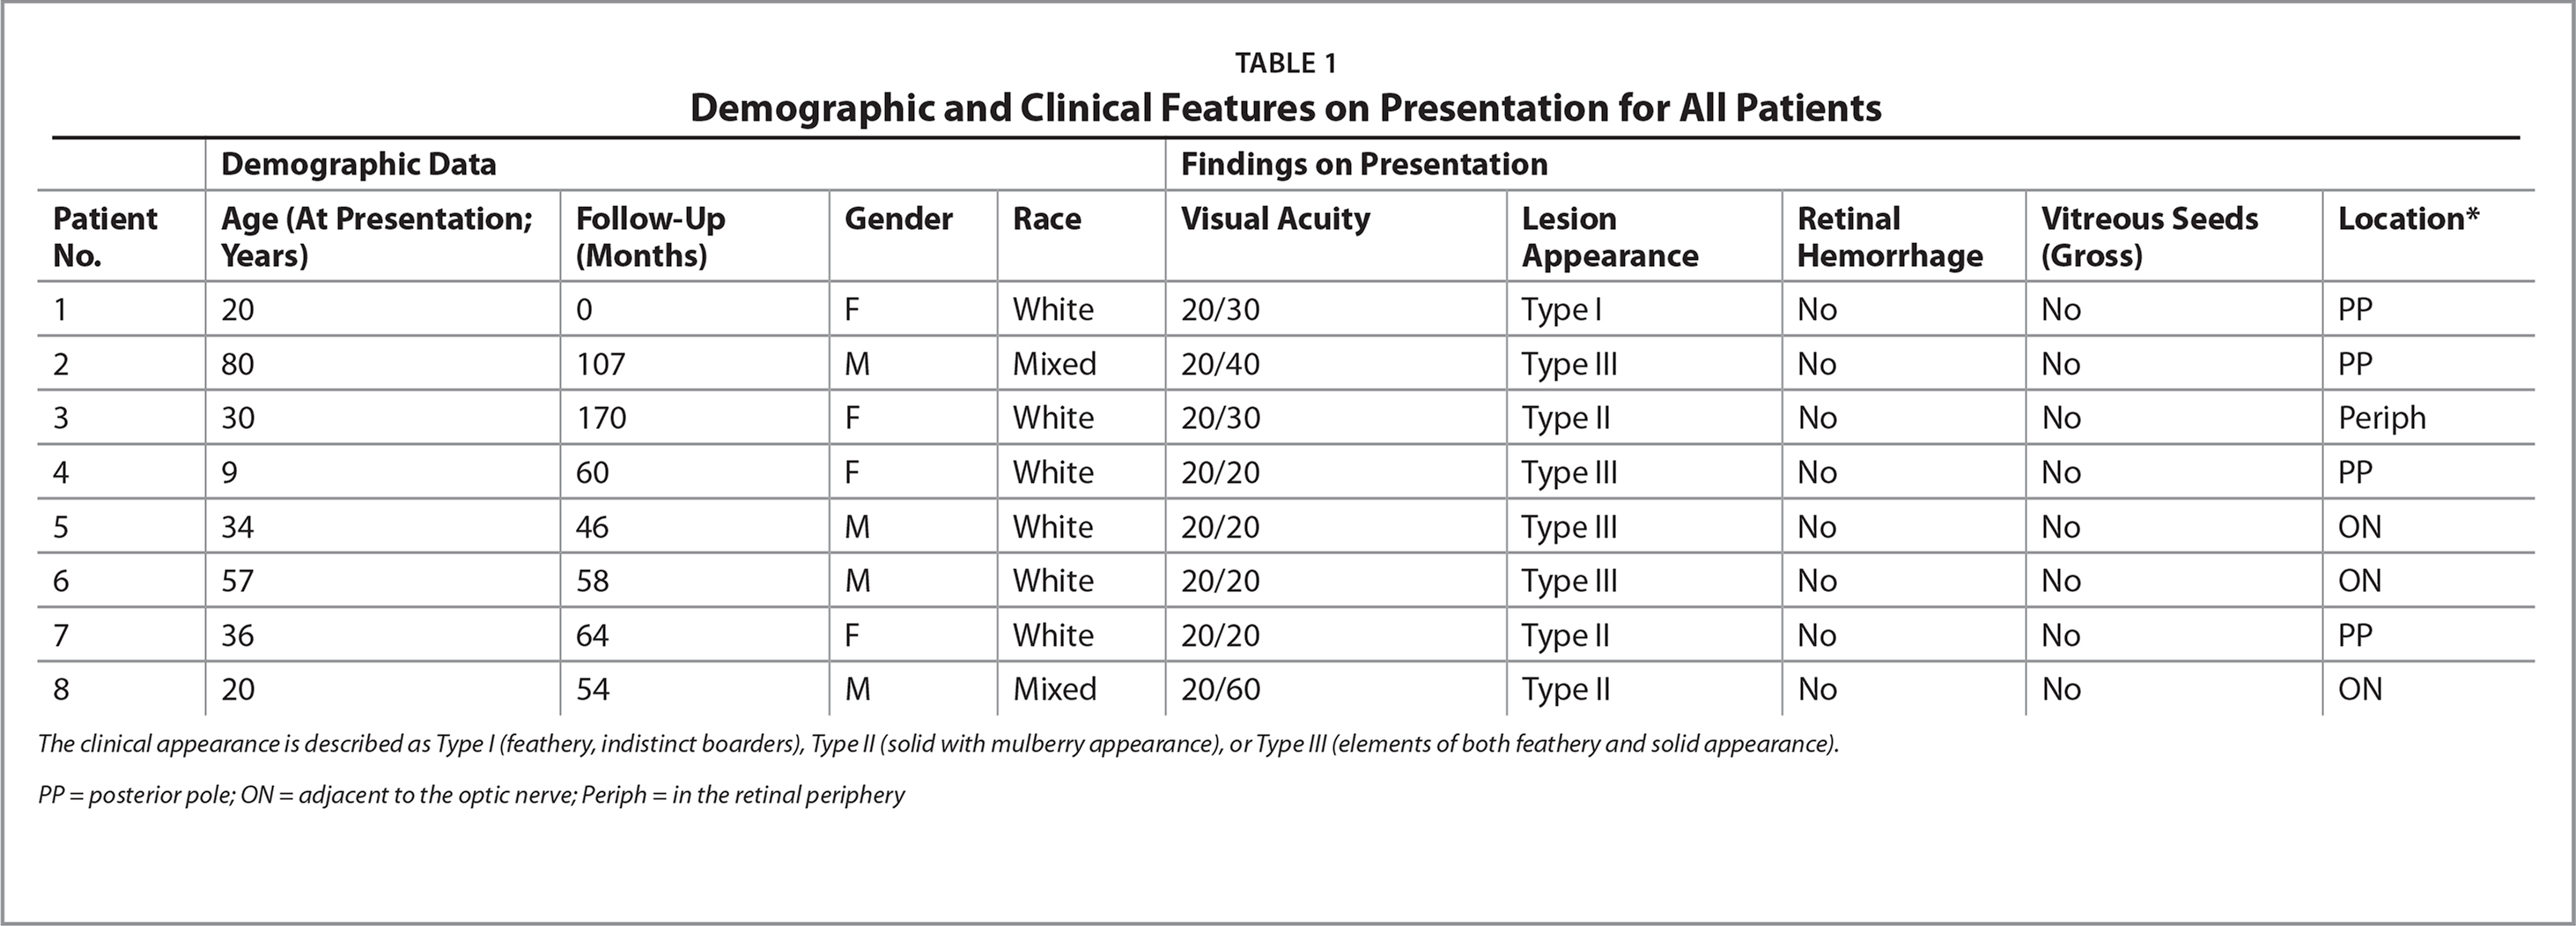 Demographic and Clinical Features on Presentation for All Patients